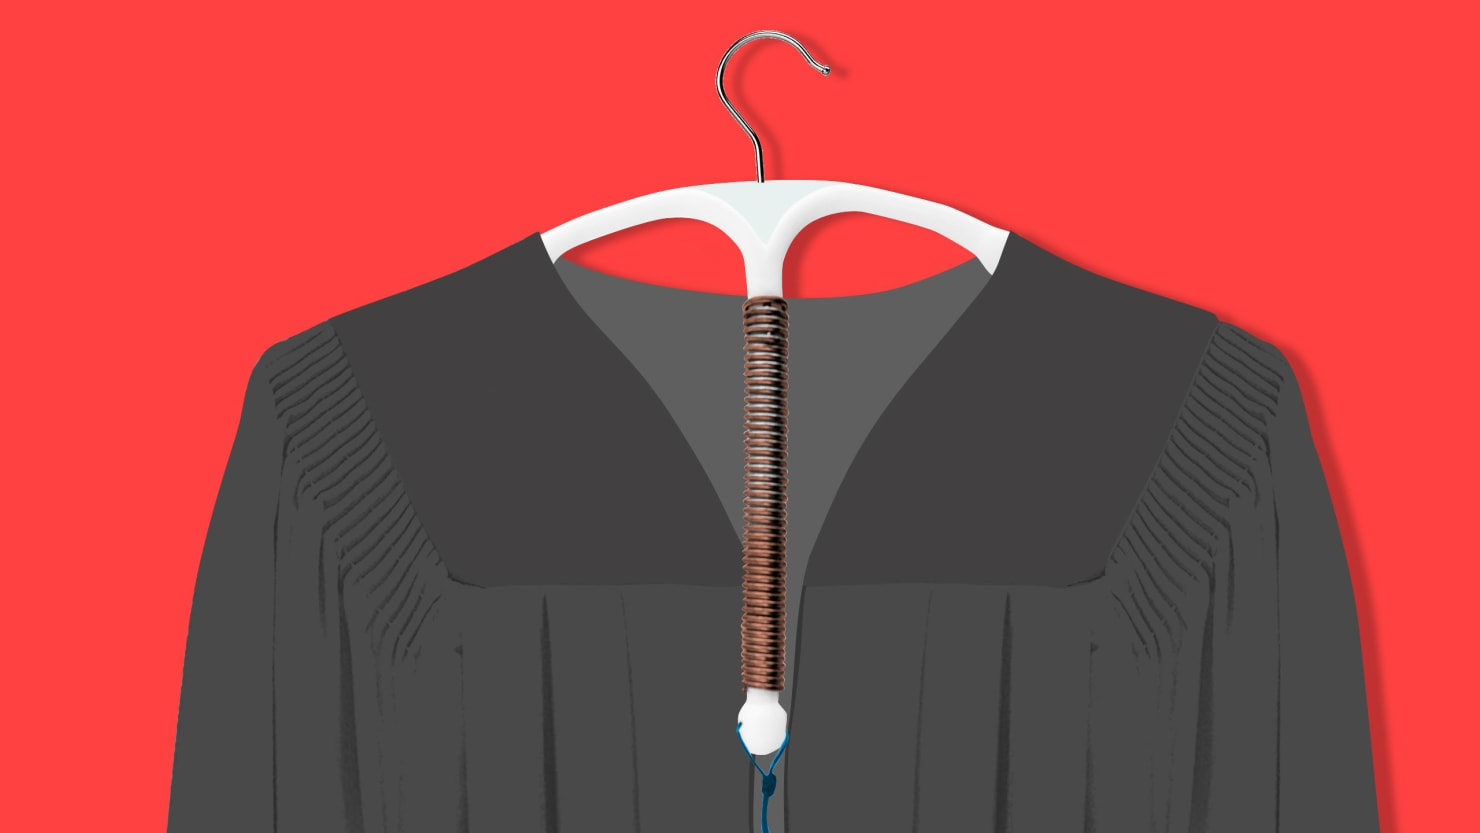 justice anthony kennedy coat with iud superimposed birth control